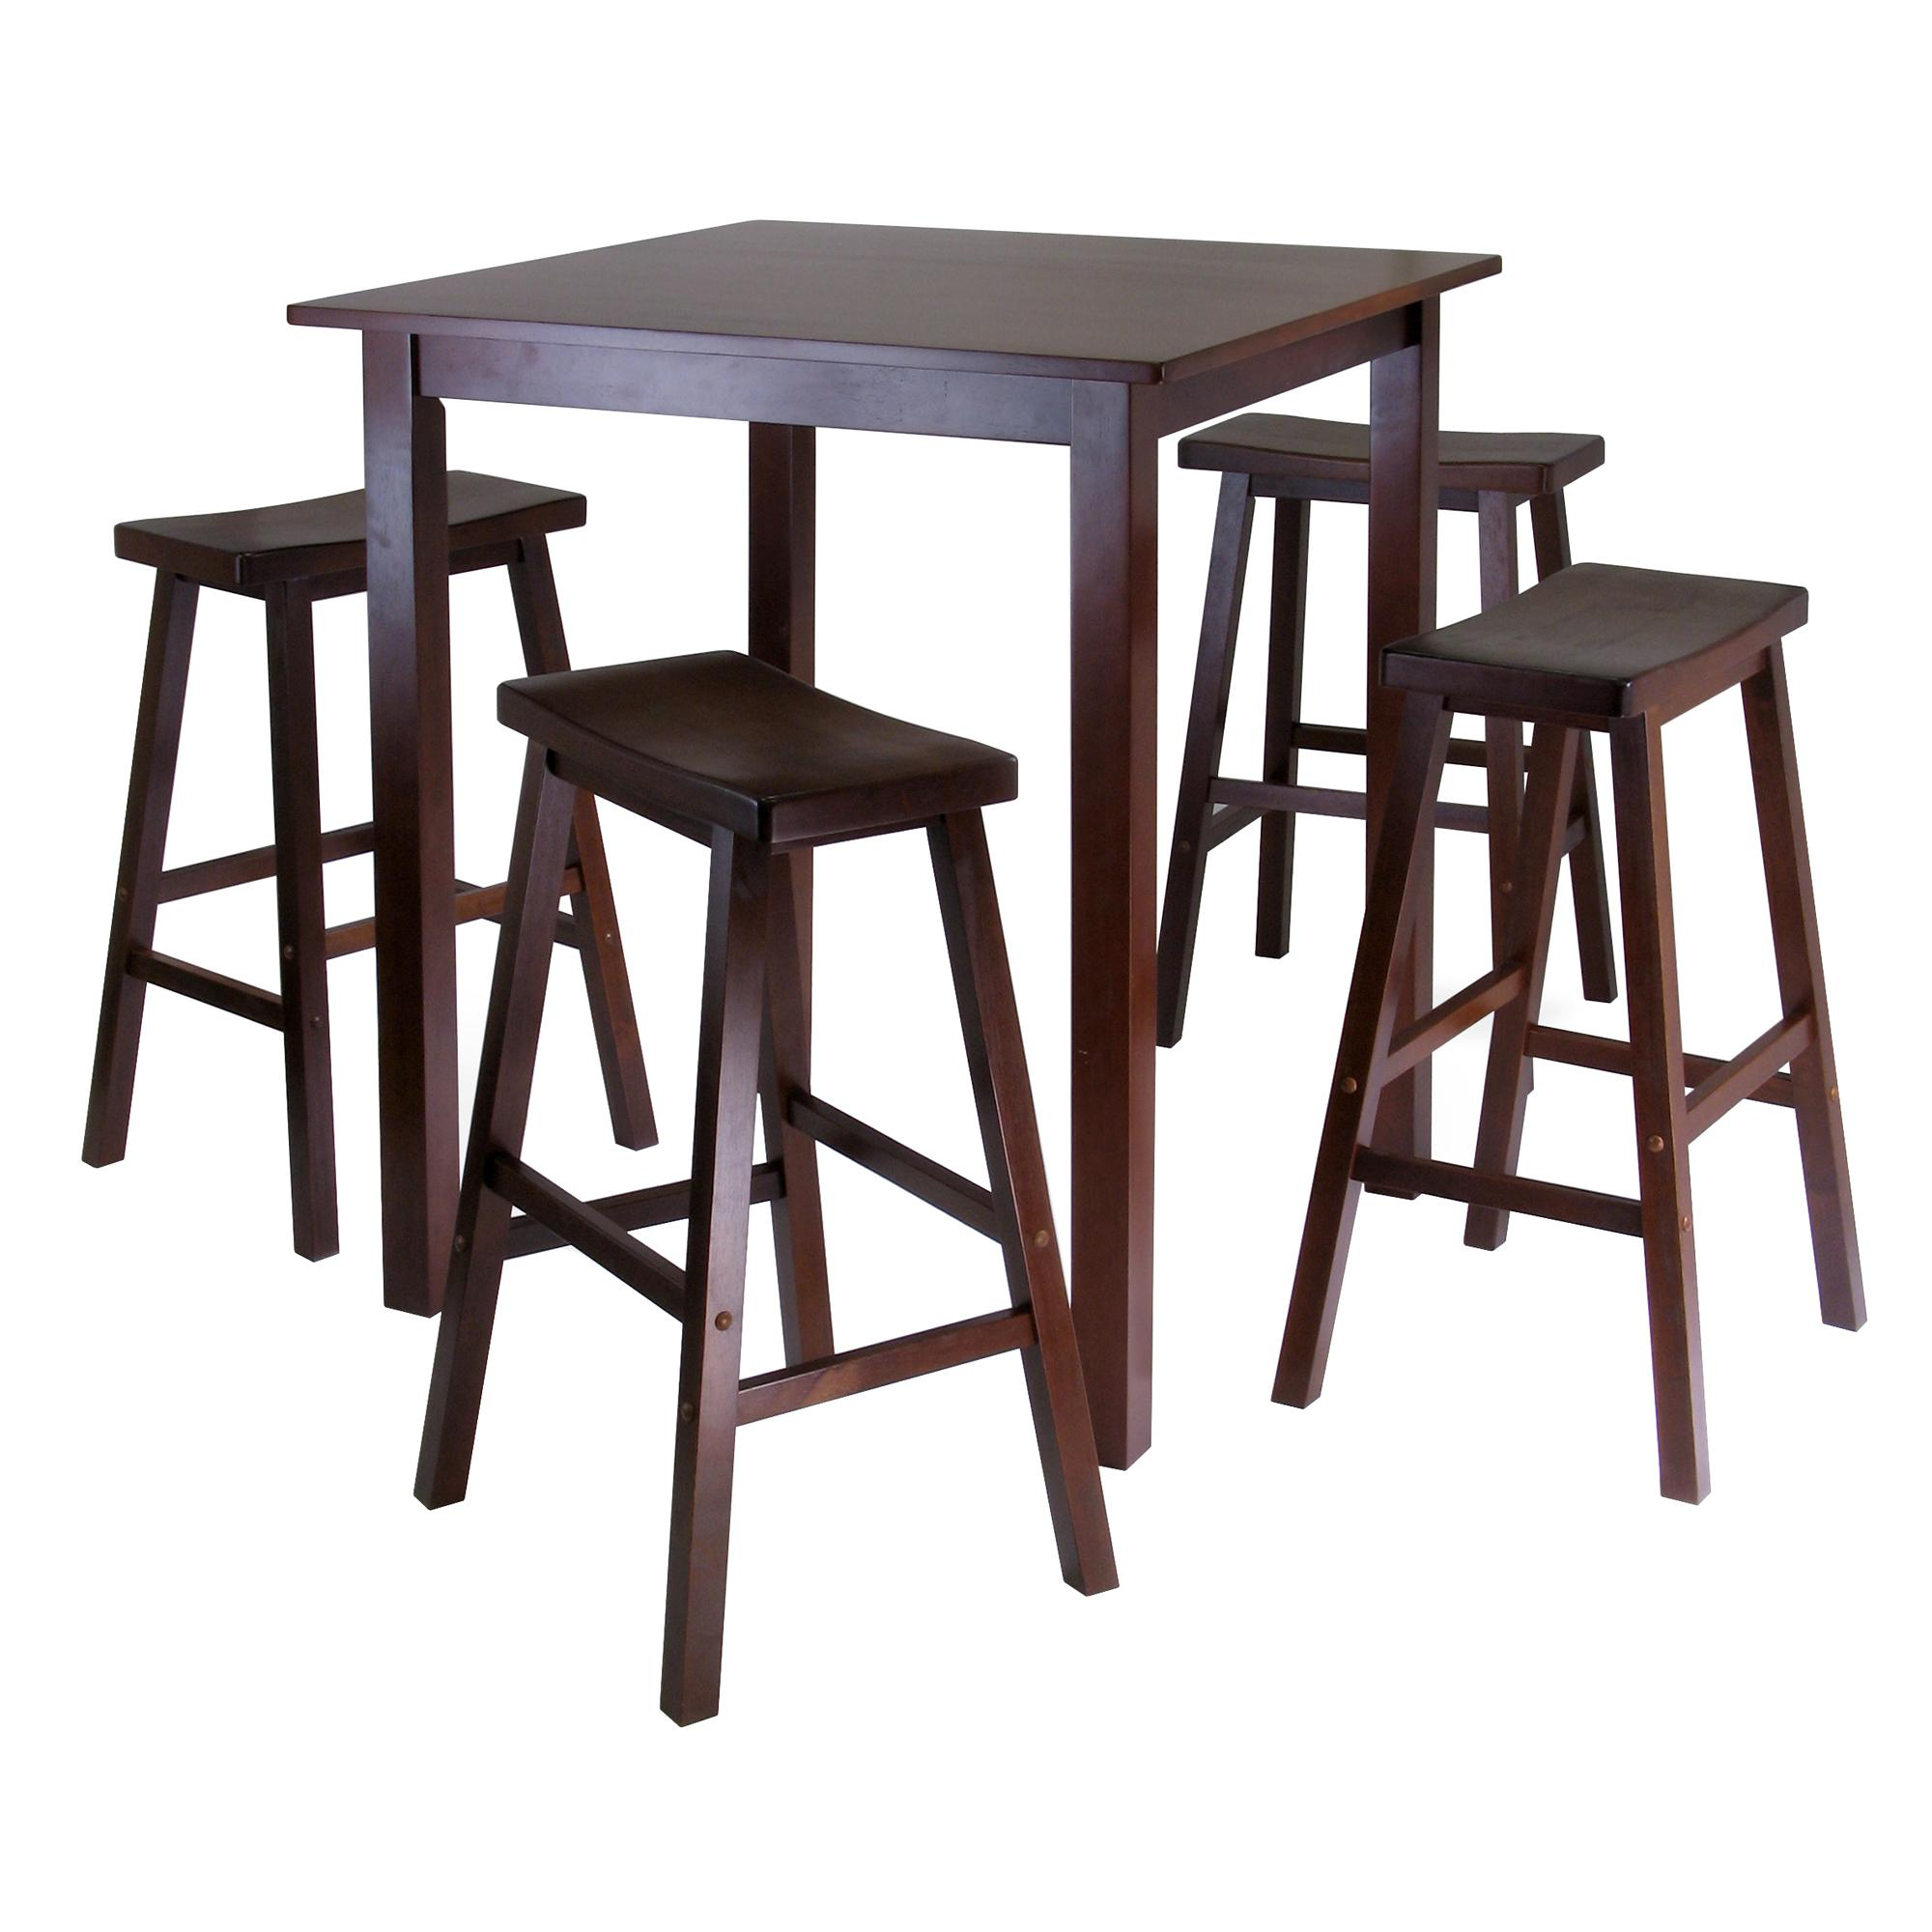 pub chair sets Chrome table and